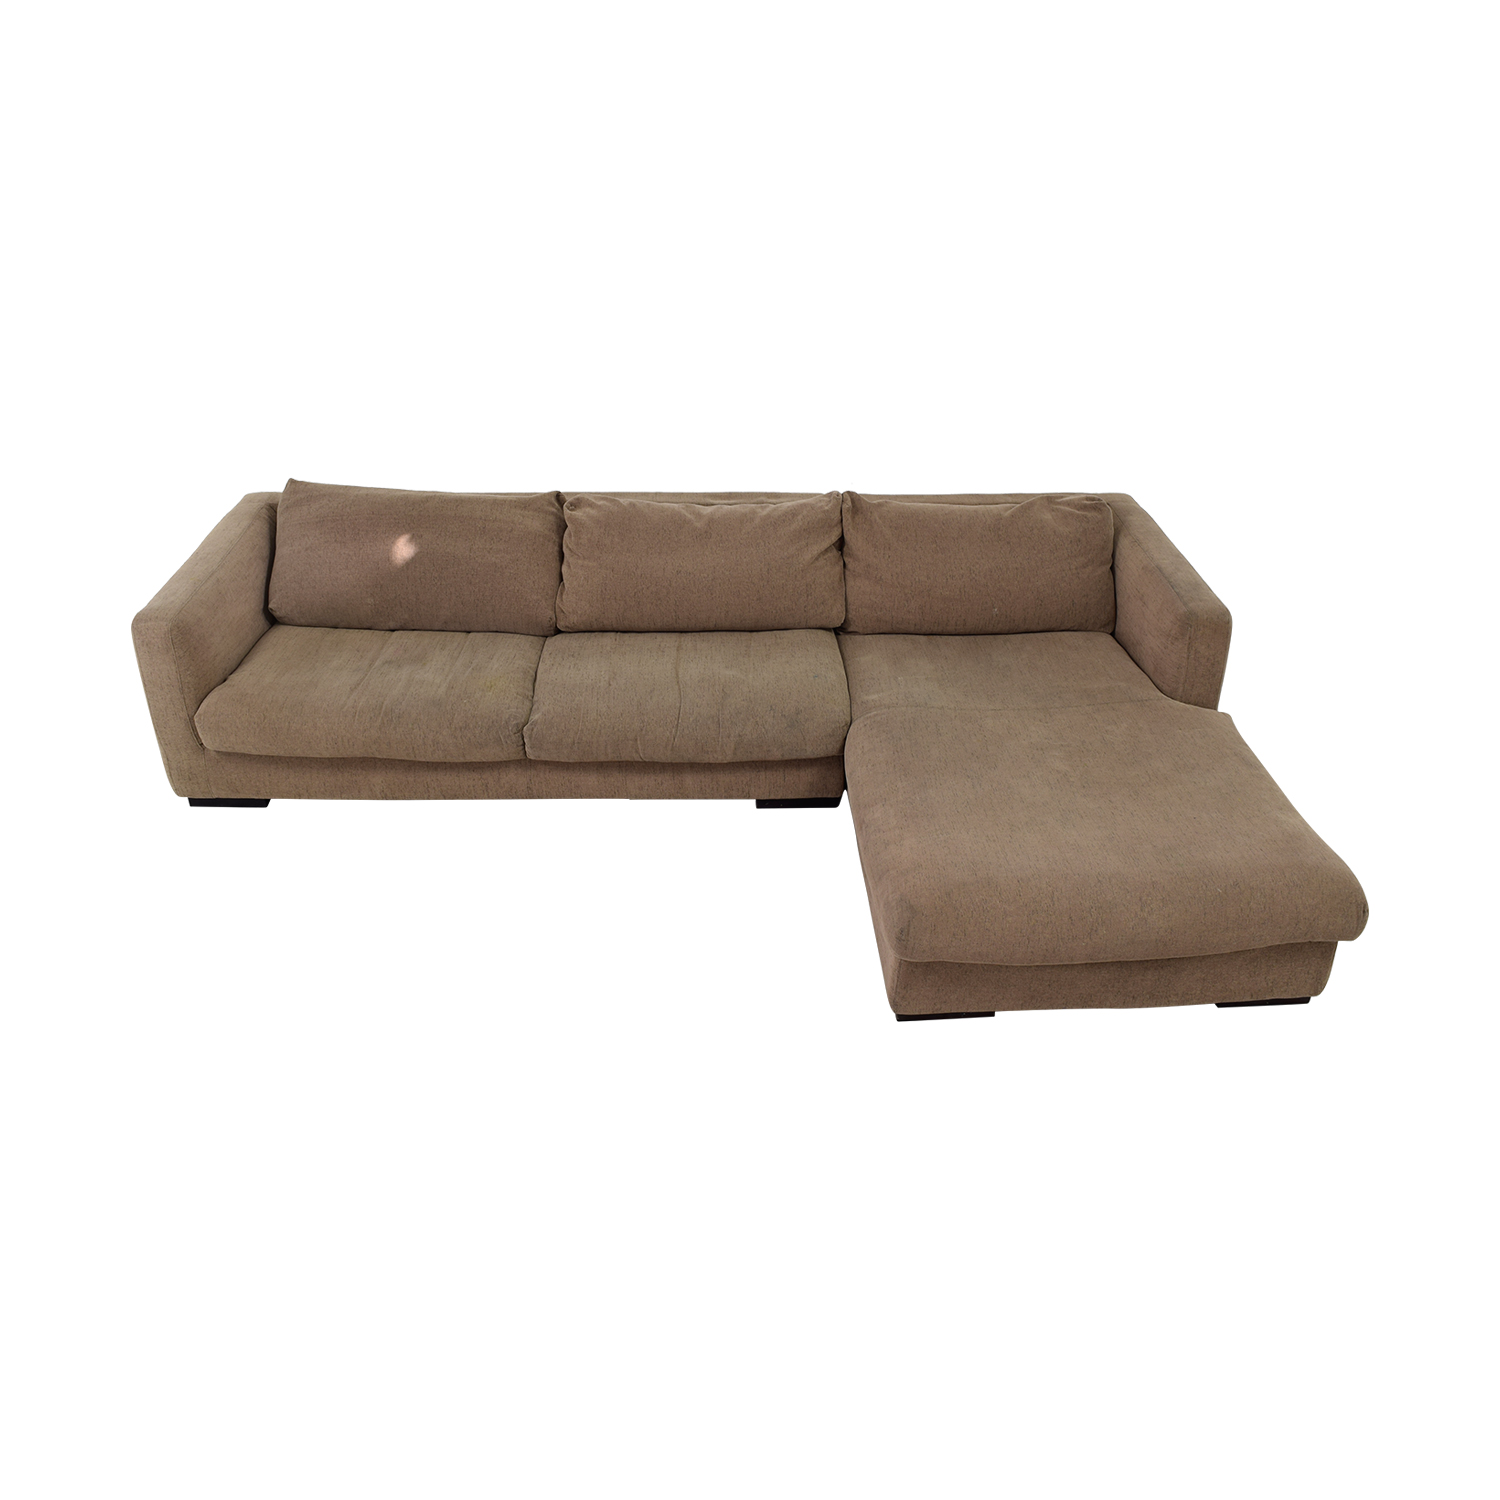 Plummers Furniture Tan Down Feather Chaise Sectional / Sofas